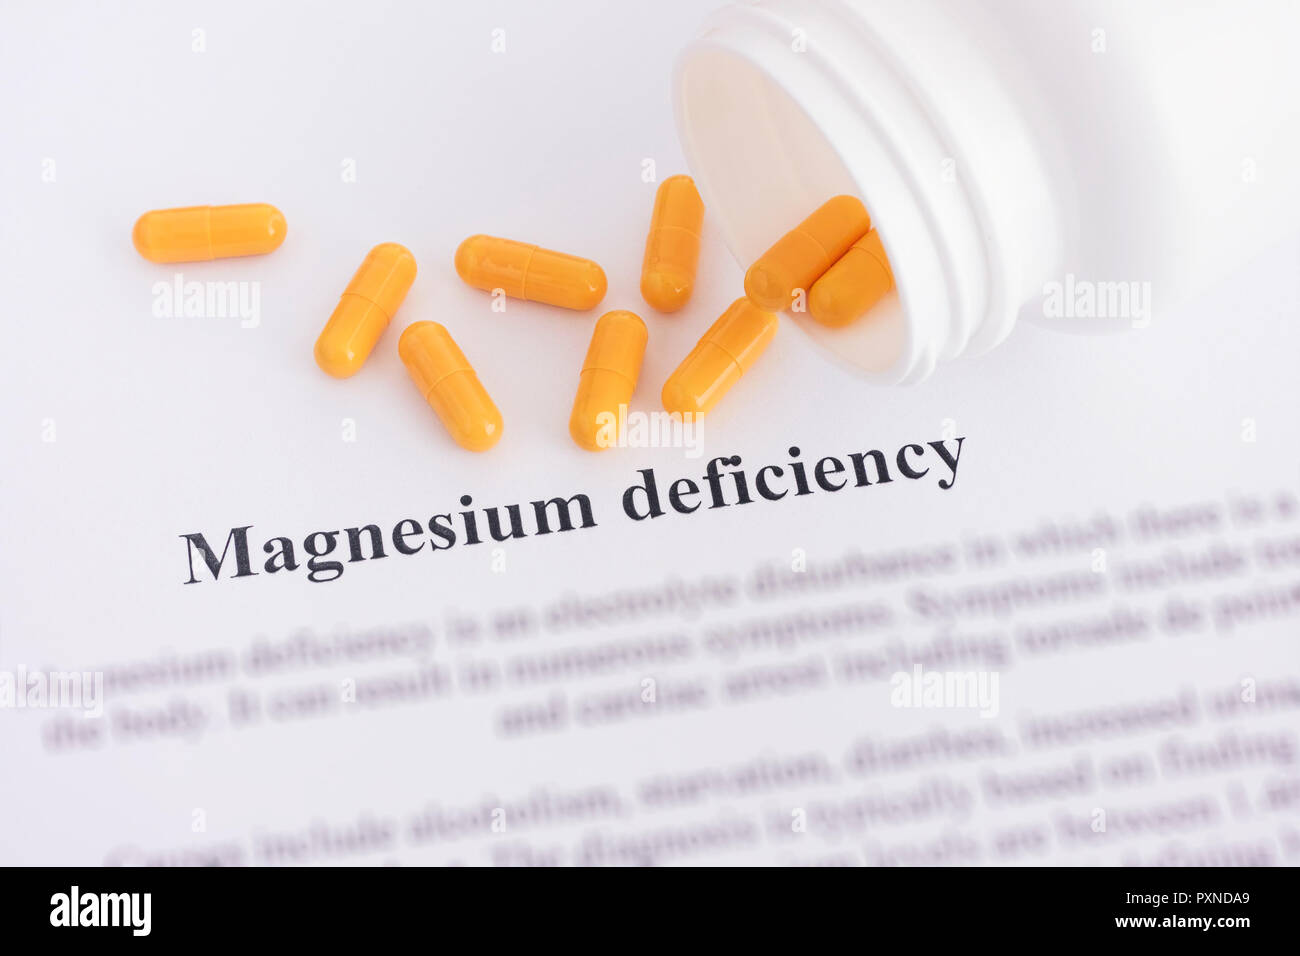 Magnesium deficiency diagnosis on paper with pills spilling out of a bottle. Close up. - Stock Image